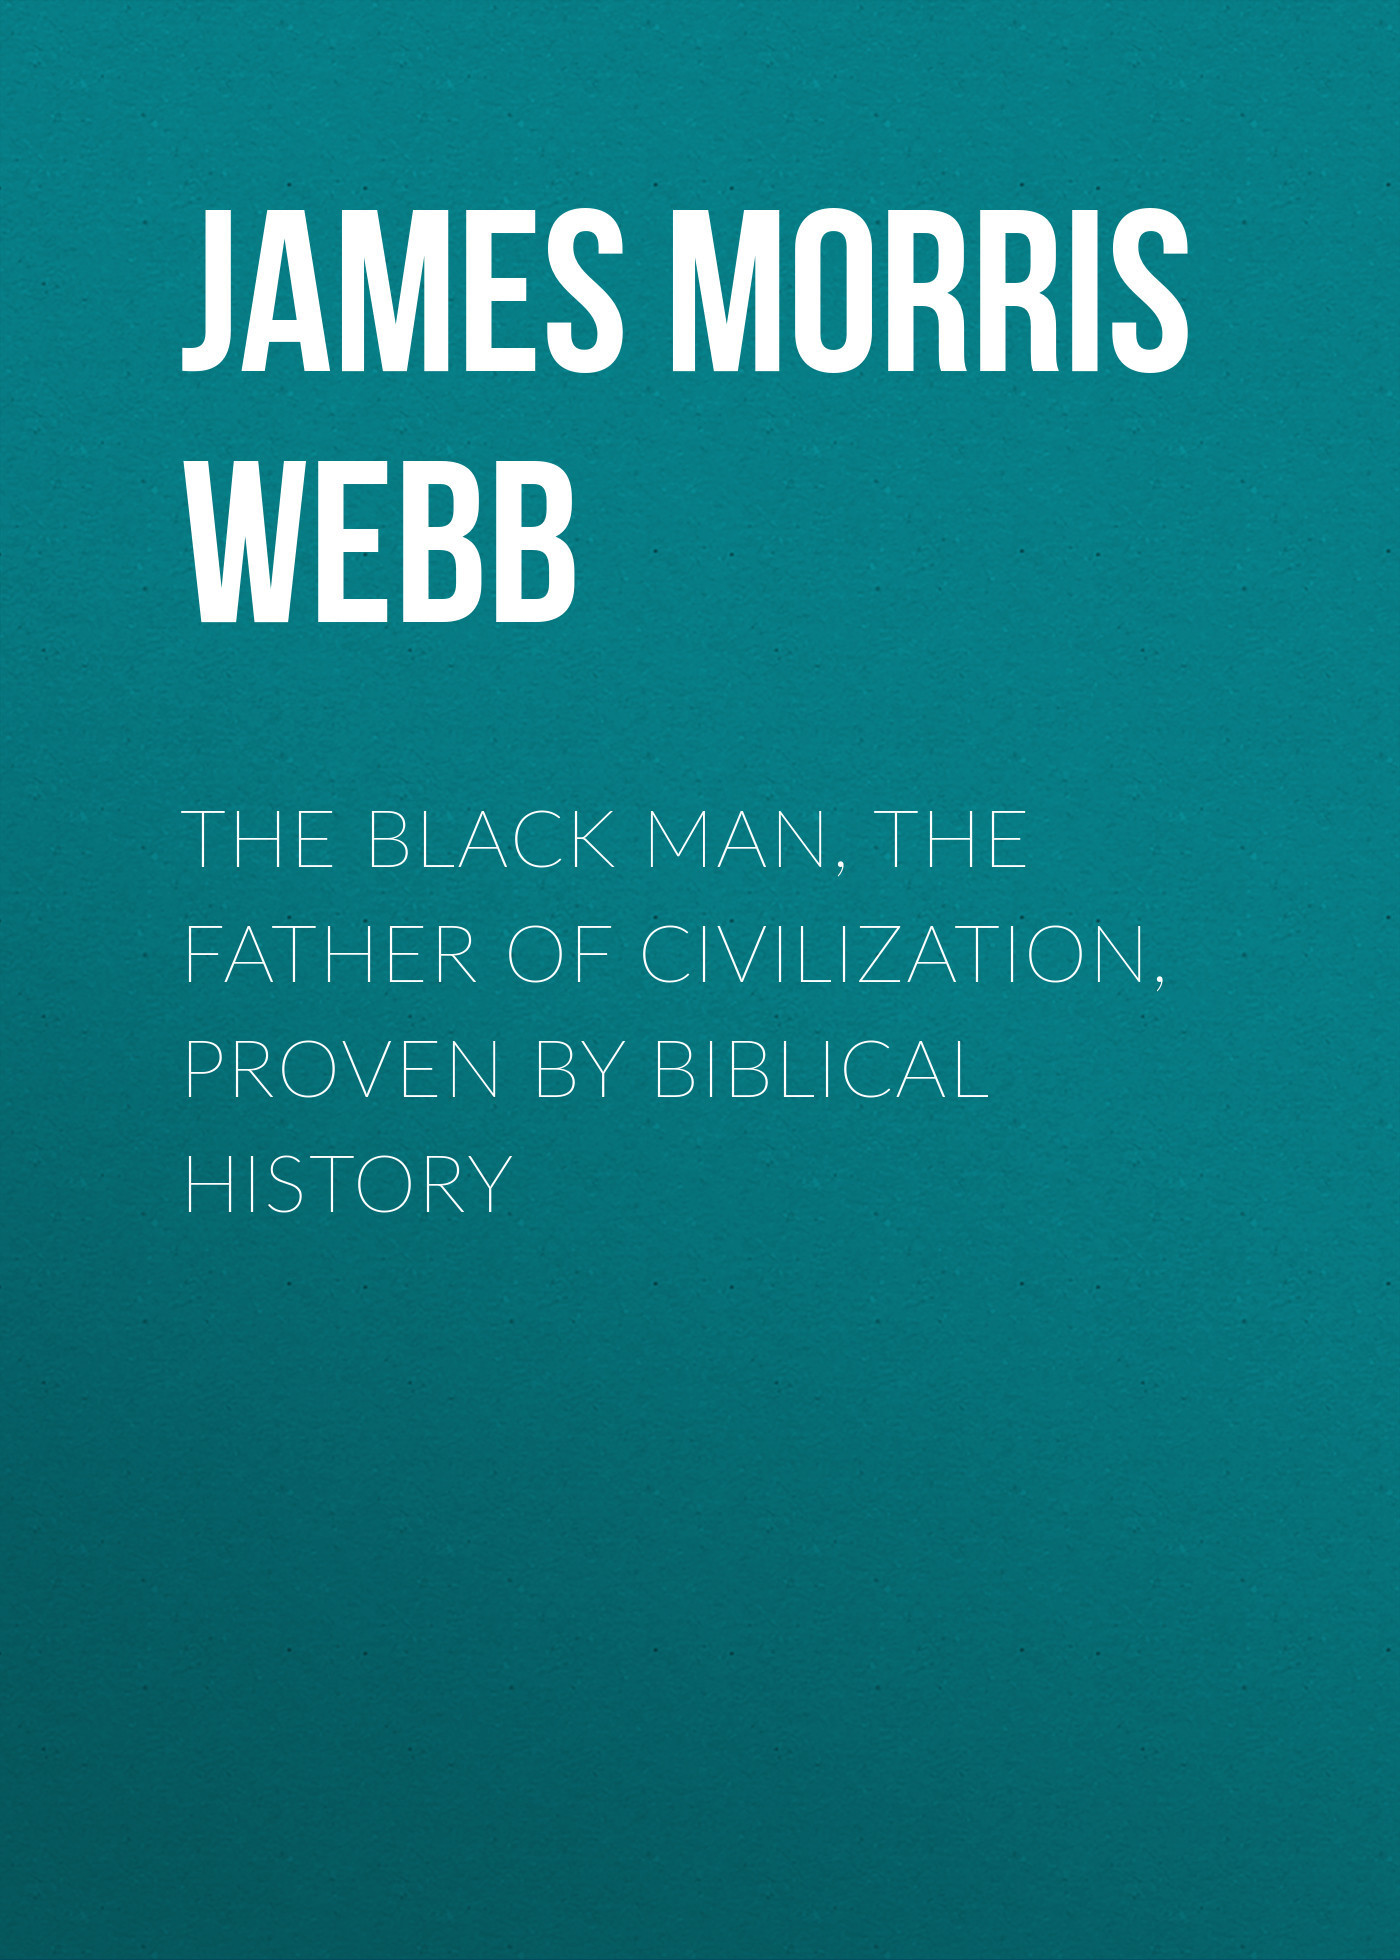 James Morris Webb The Black Man, the Father of Civilization, Proven by Biblical History black jinhao free shipping fountain pen and bag high quality man women pens business school gift send friend father 031